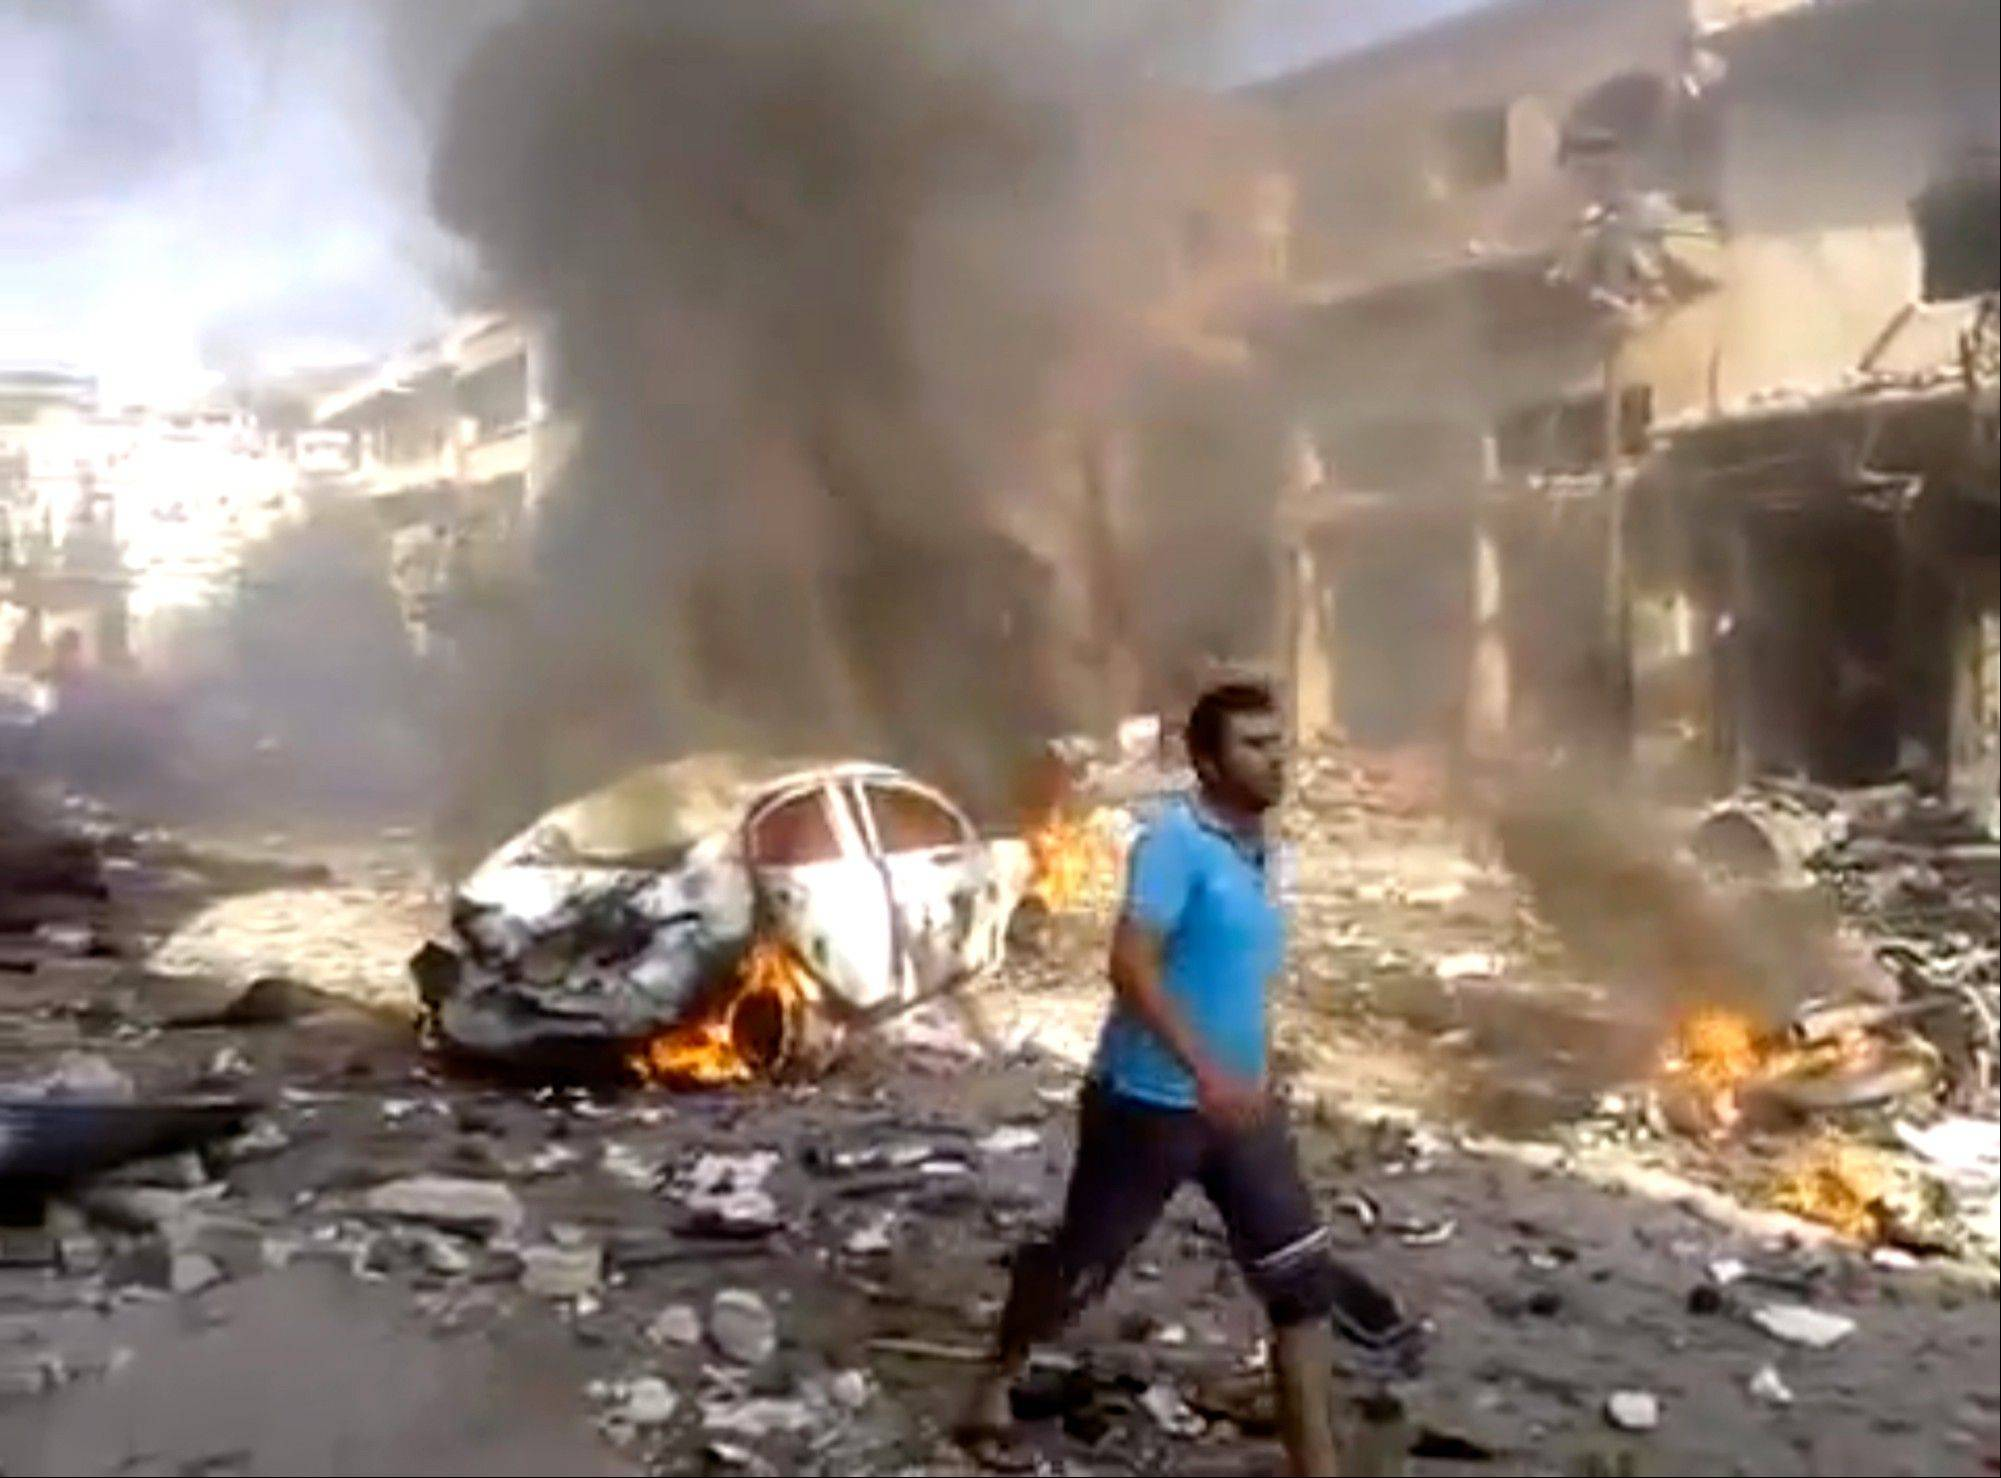 A car bombing in a rebel-held northwestern town in Syria killed at least 15 people and wounded dozens on Monday, setting cars on fire and sending people running in panic, two activist groups said.